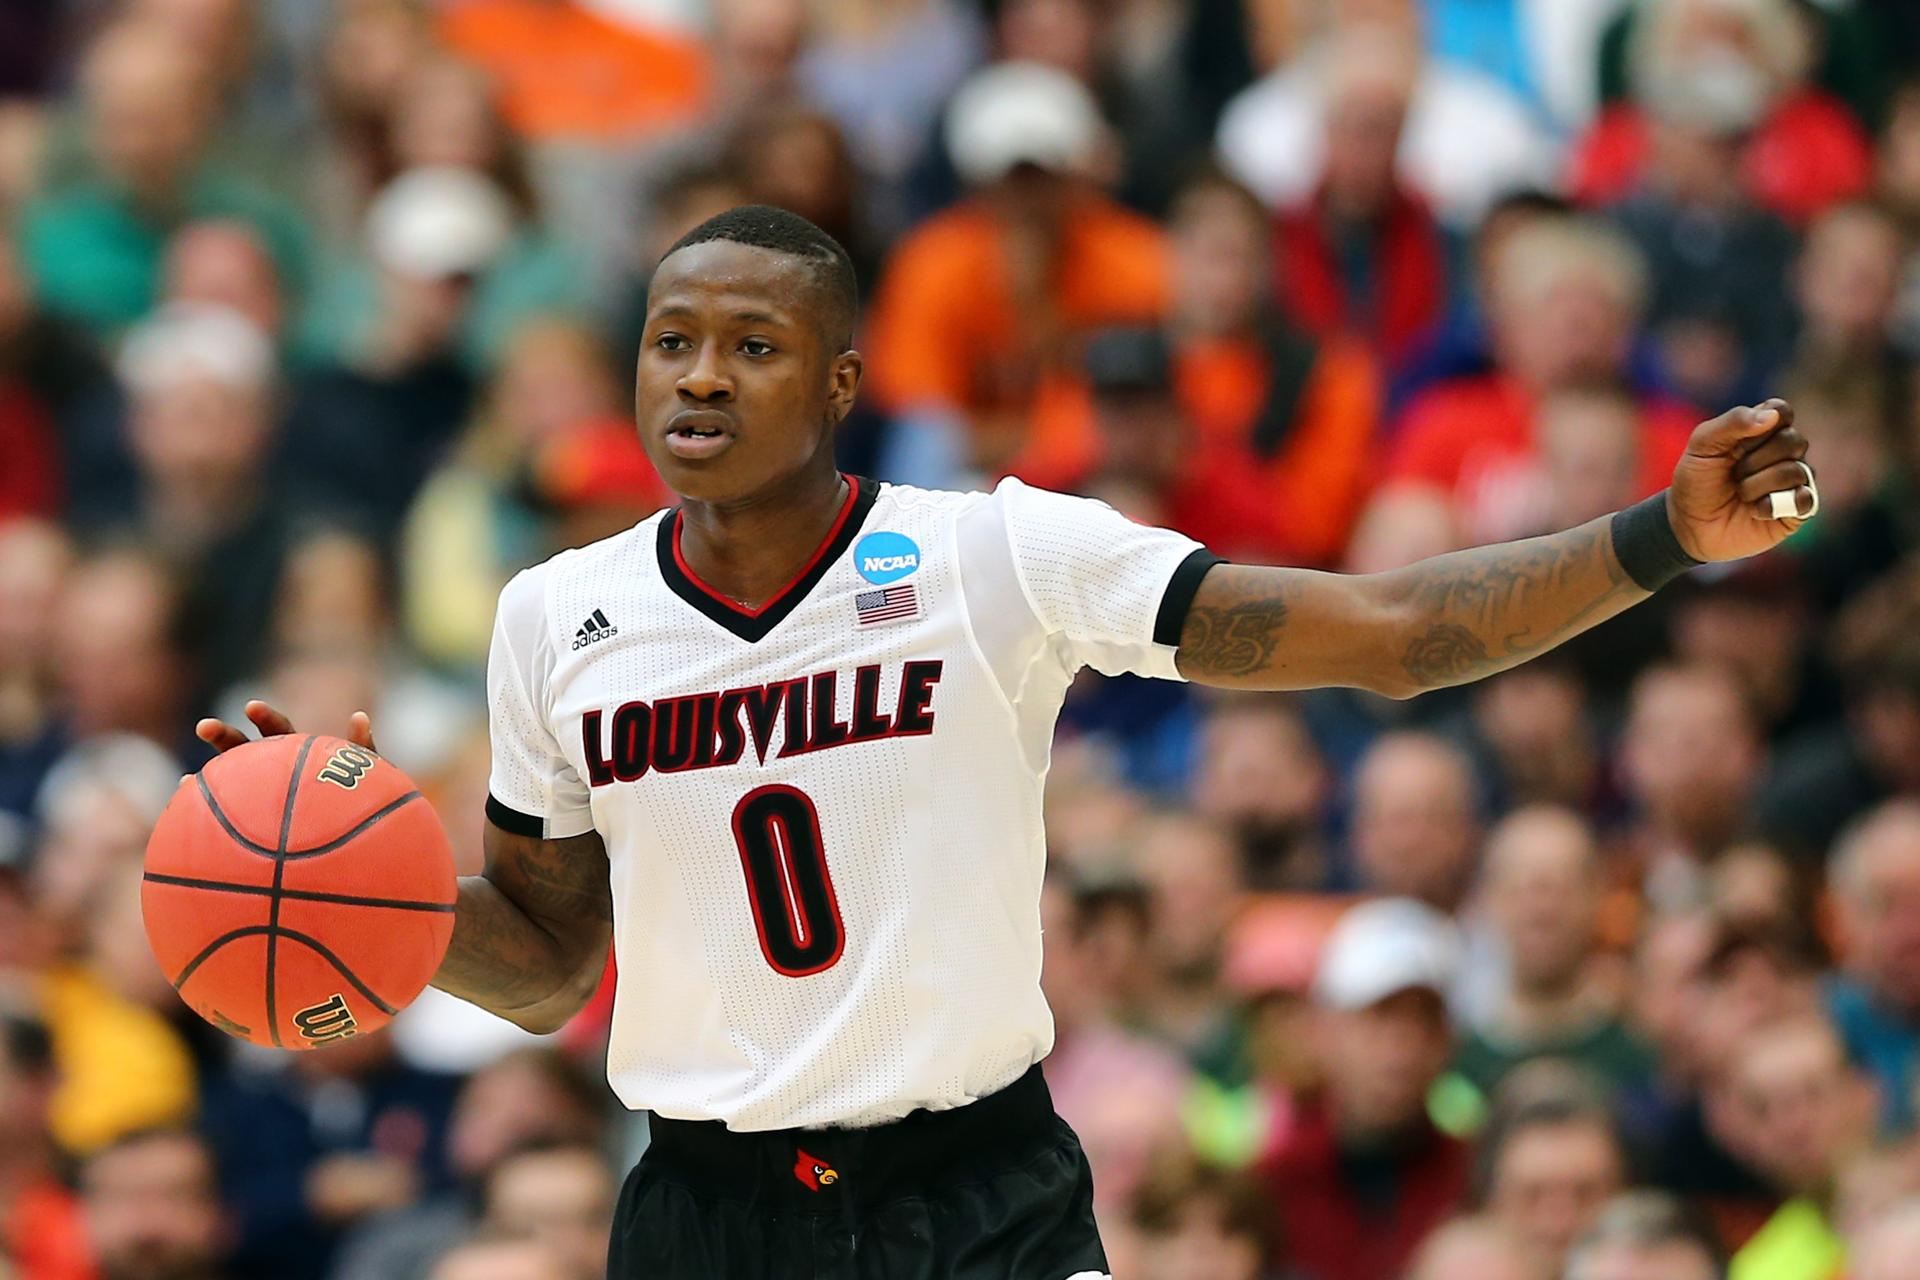 This past year, Terry Rozier led the Louisville Cardinals to the NCAA tournament's Round of 8.